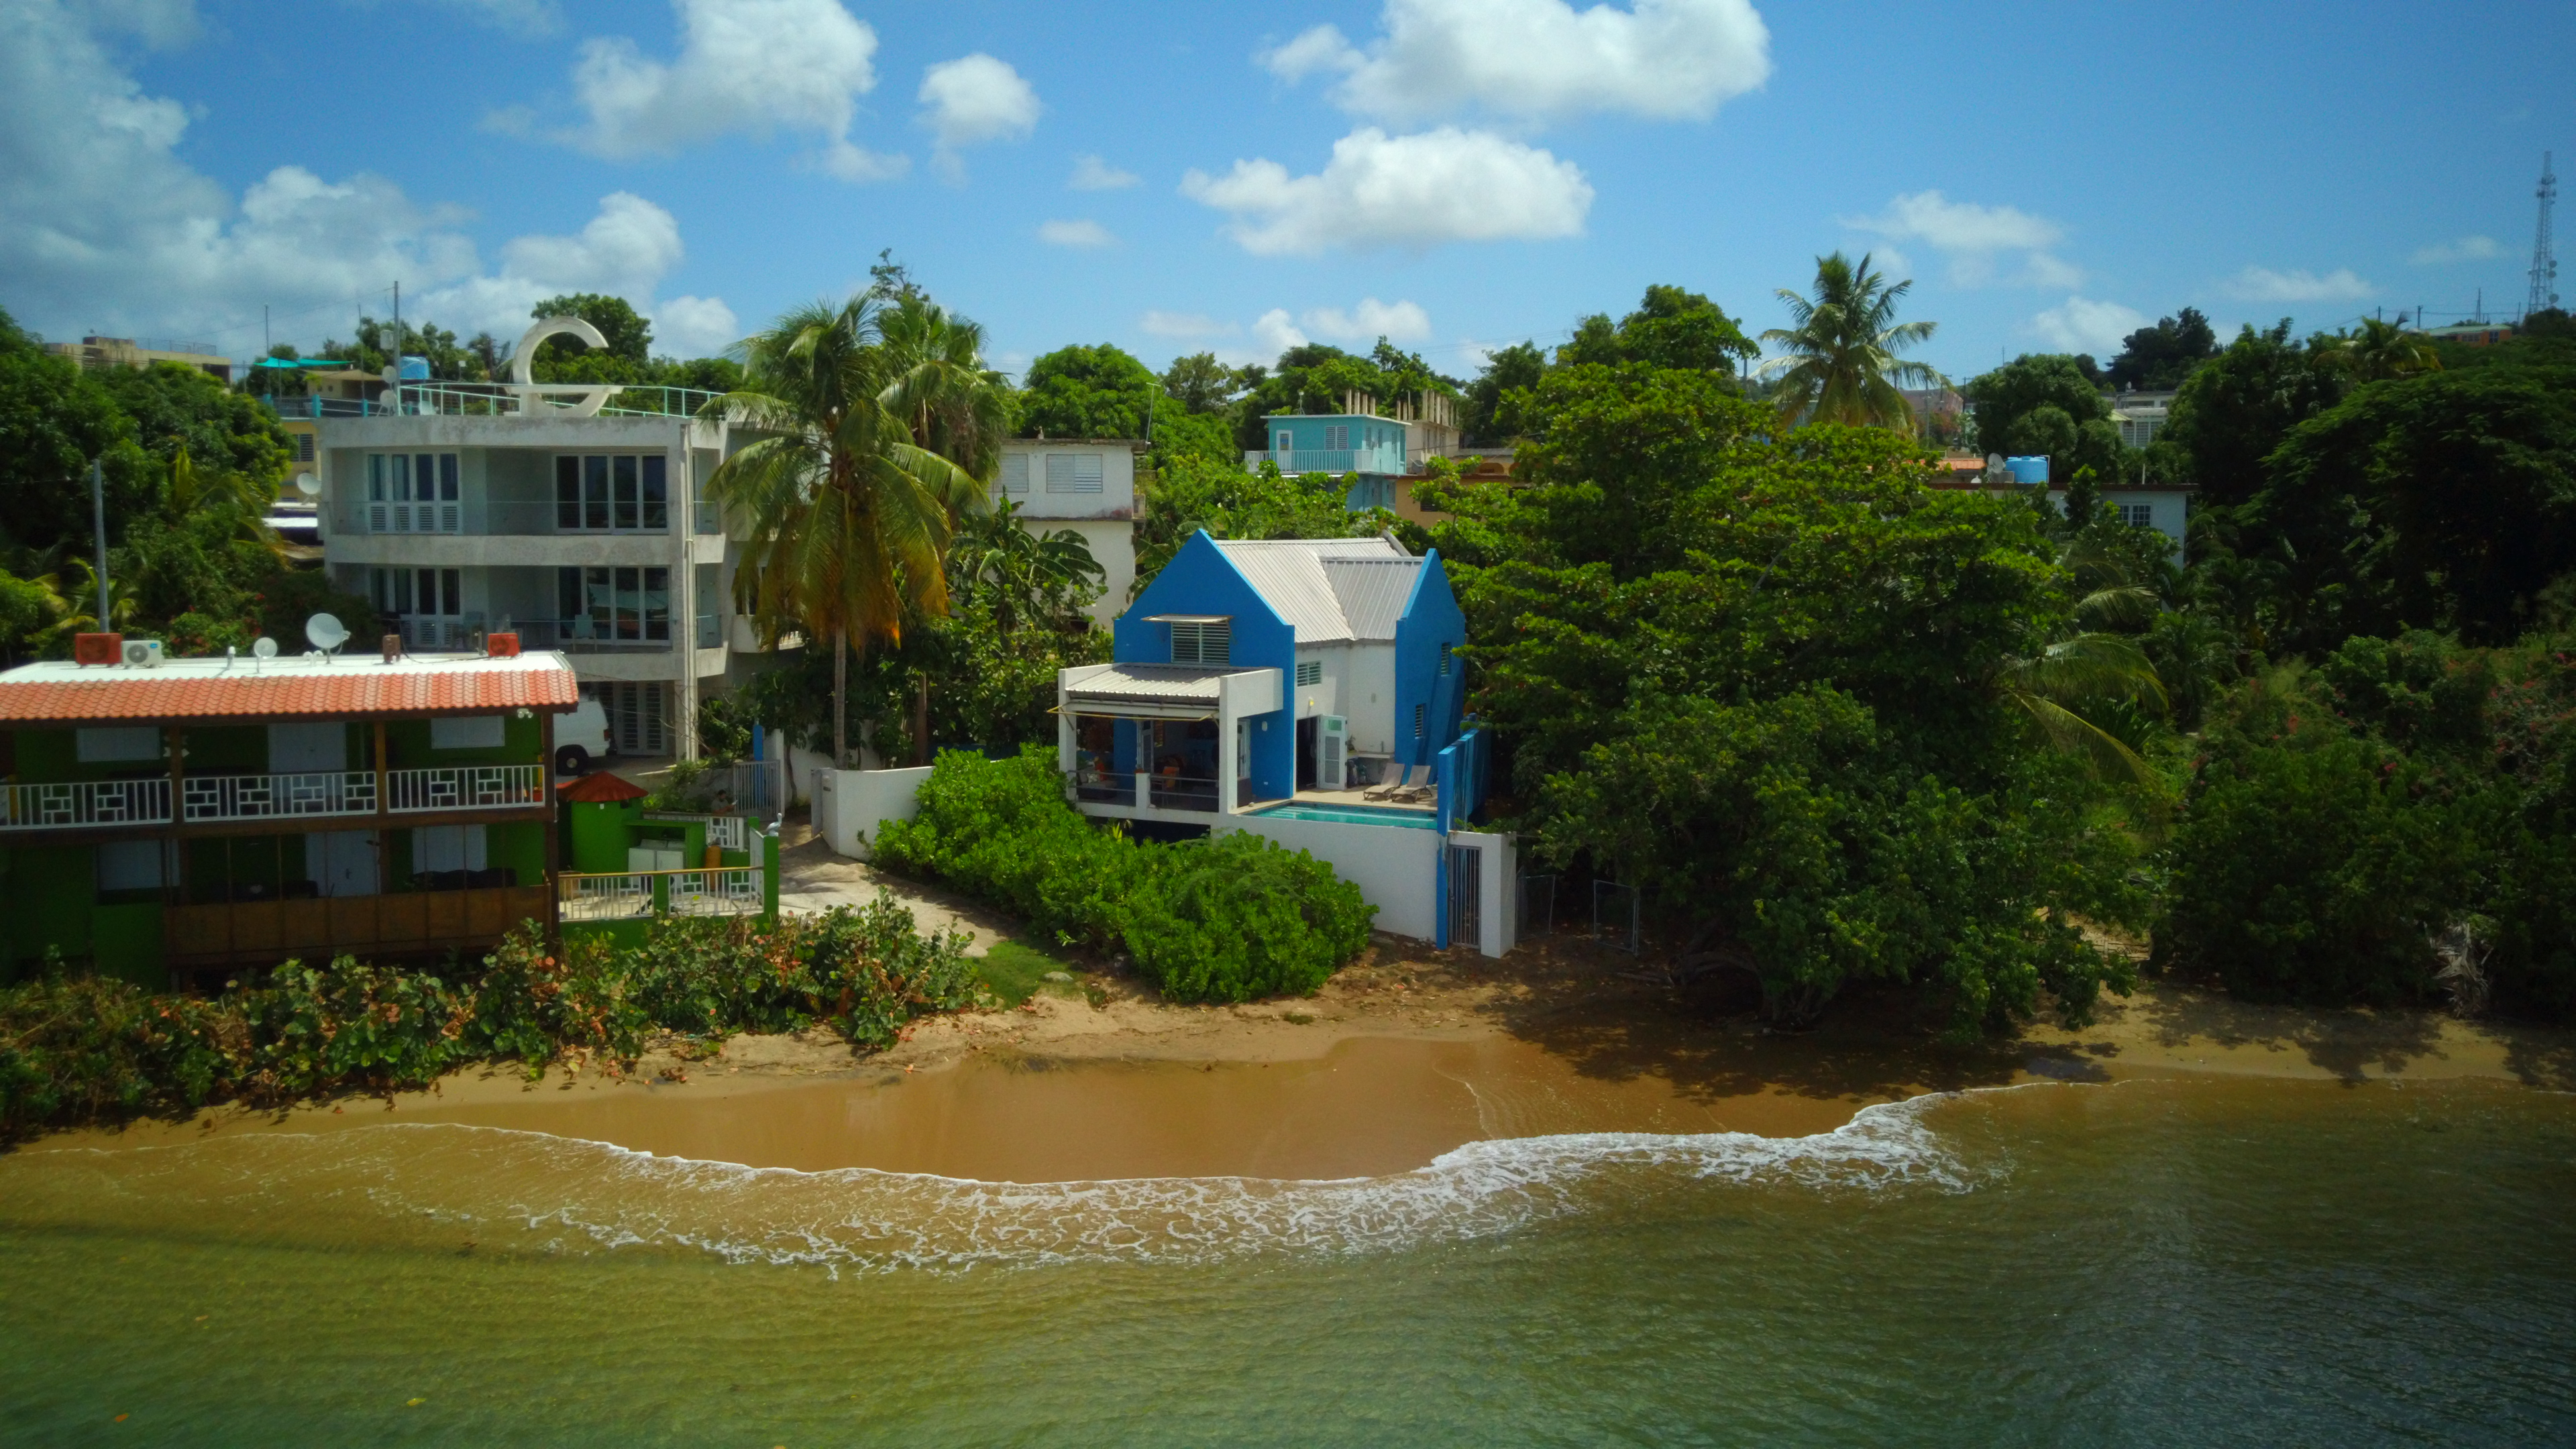 Casa Isola – Last Chance to Buy Ocean Frontage at This Price